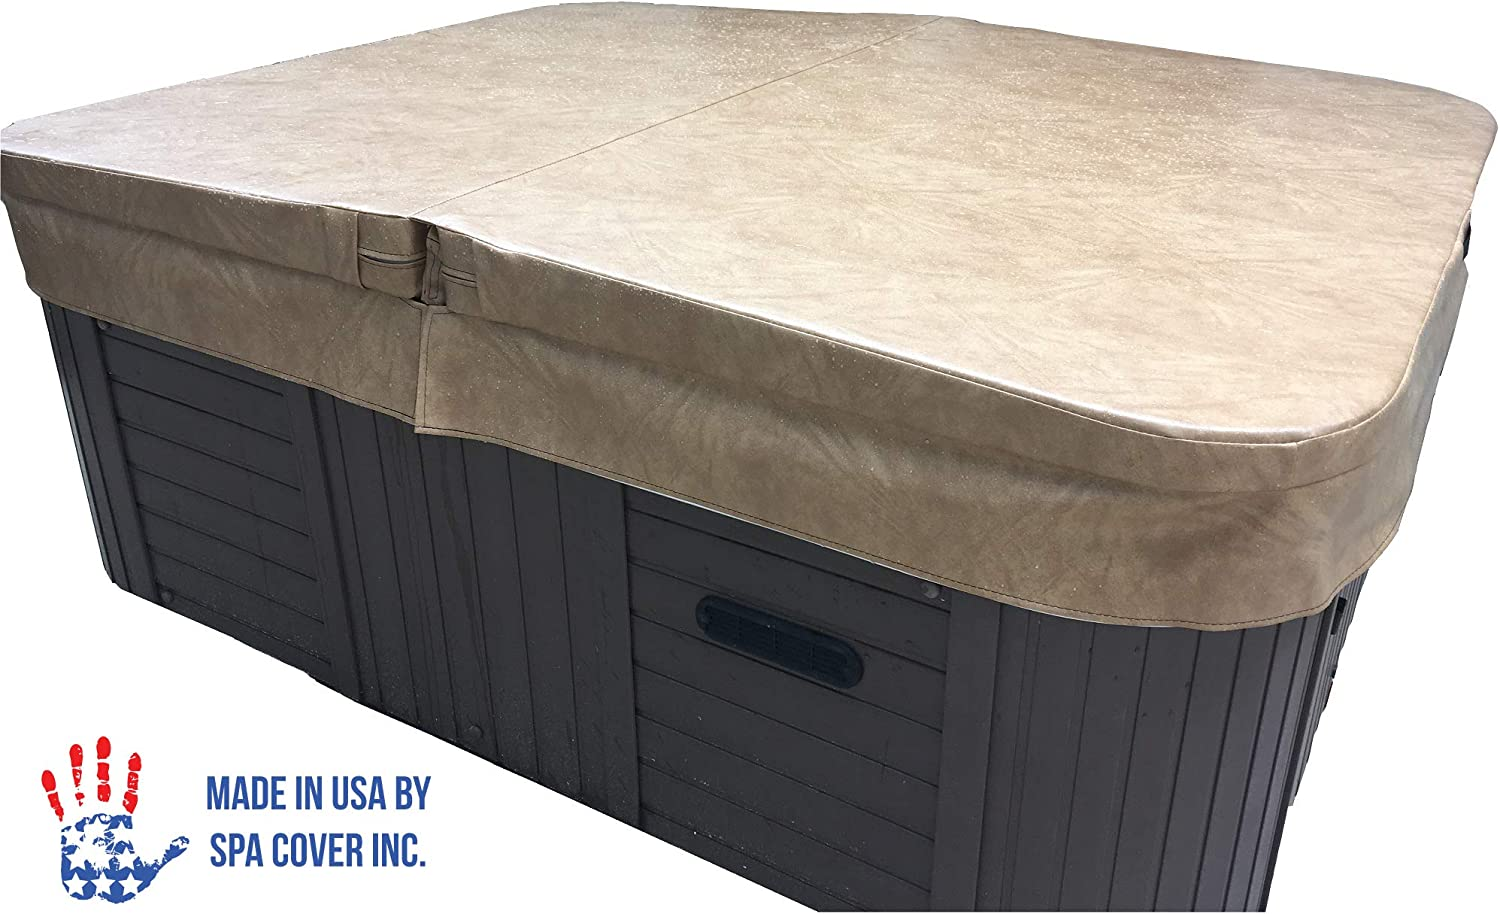 BeyondNice Basic Hot Tub Cover, Custom Made 4 Thick Insulating Replacement Spa Cover – World s Only Design Your Own Ordering Wizard Insures Every Cover is Made Perfectly for Every Customer